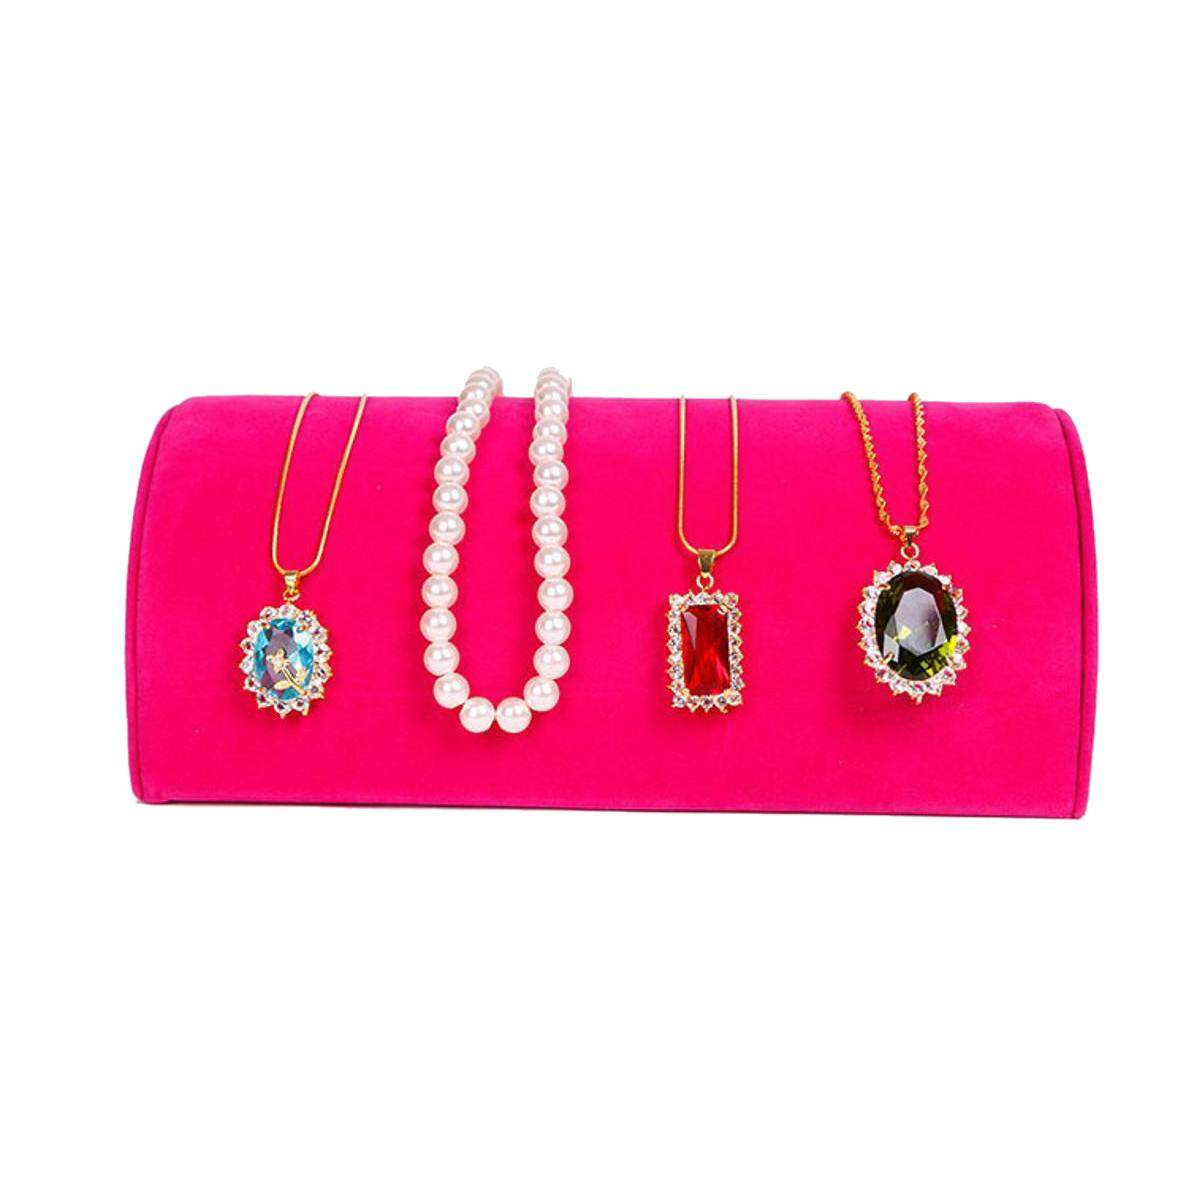 Jewelry Box for sale JewelleryBox online brands prices reviews